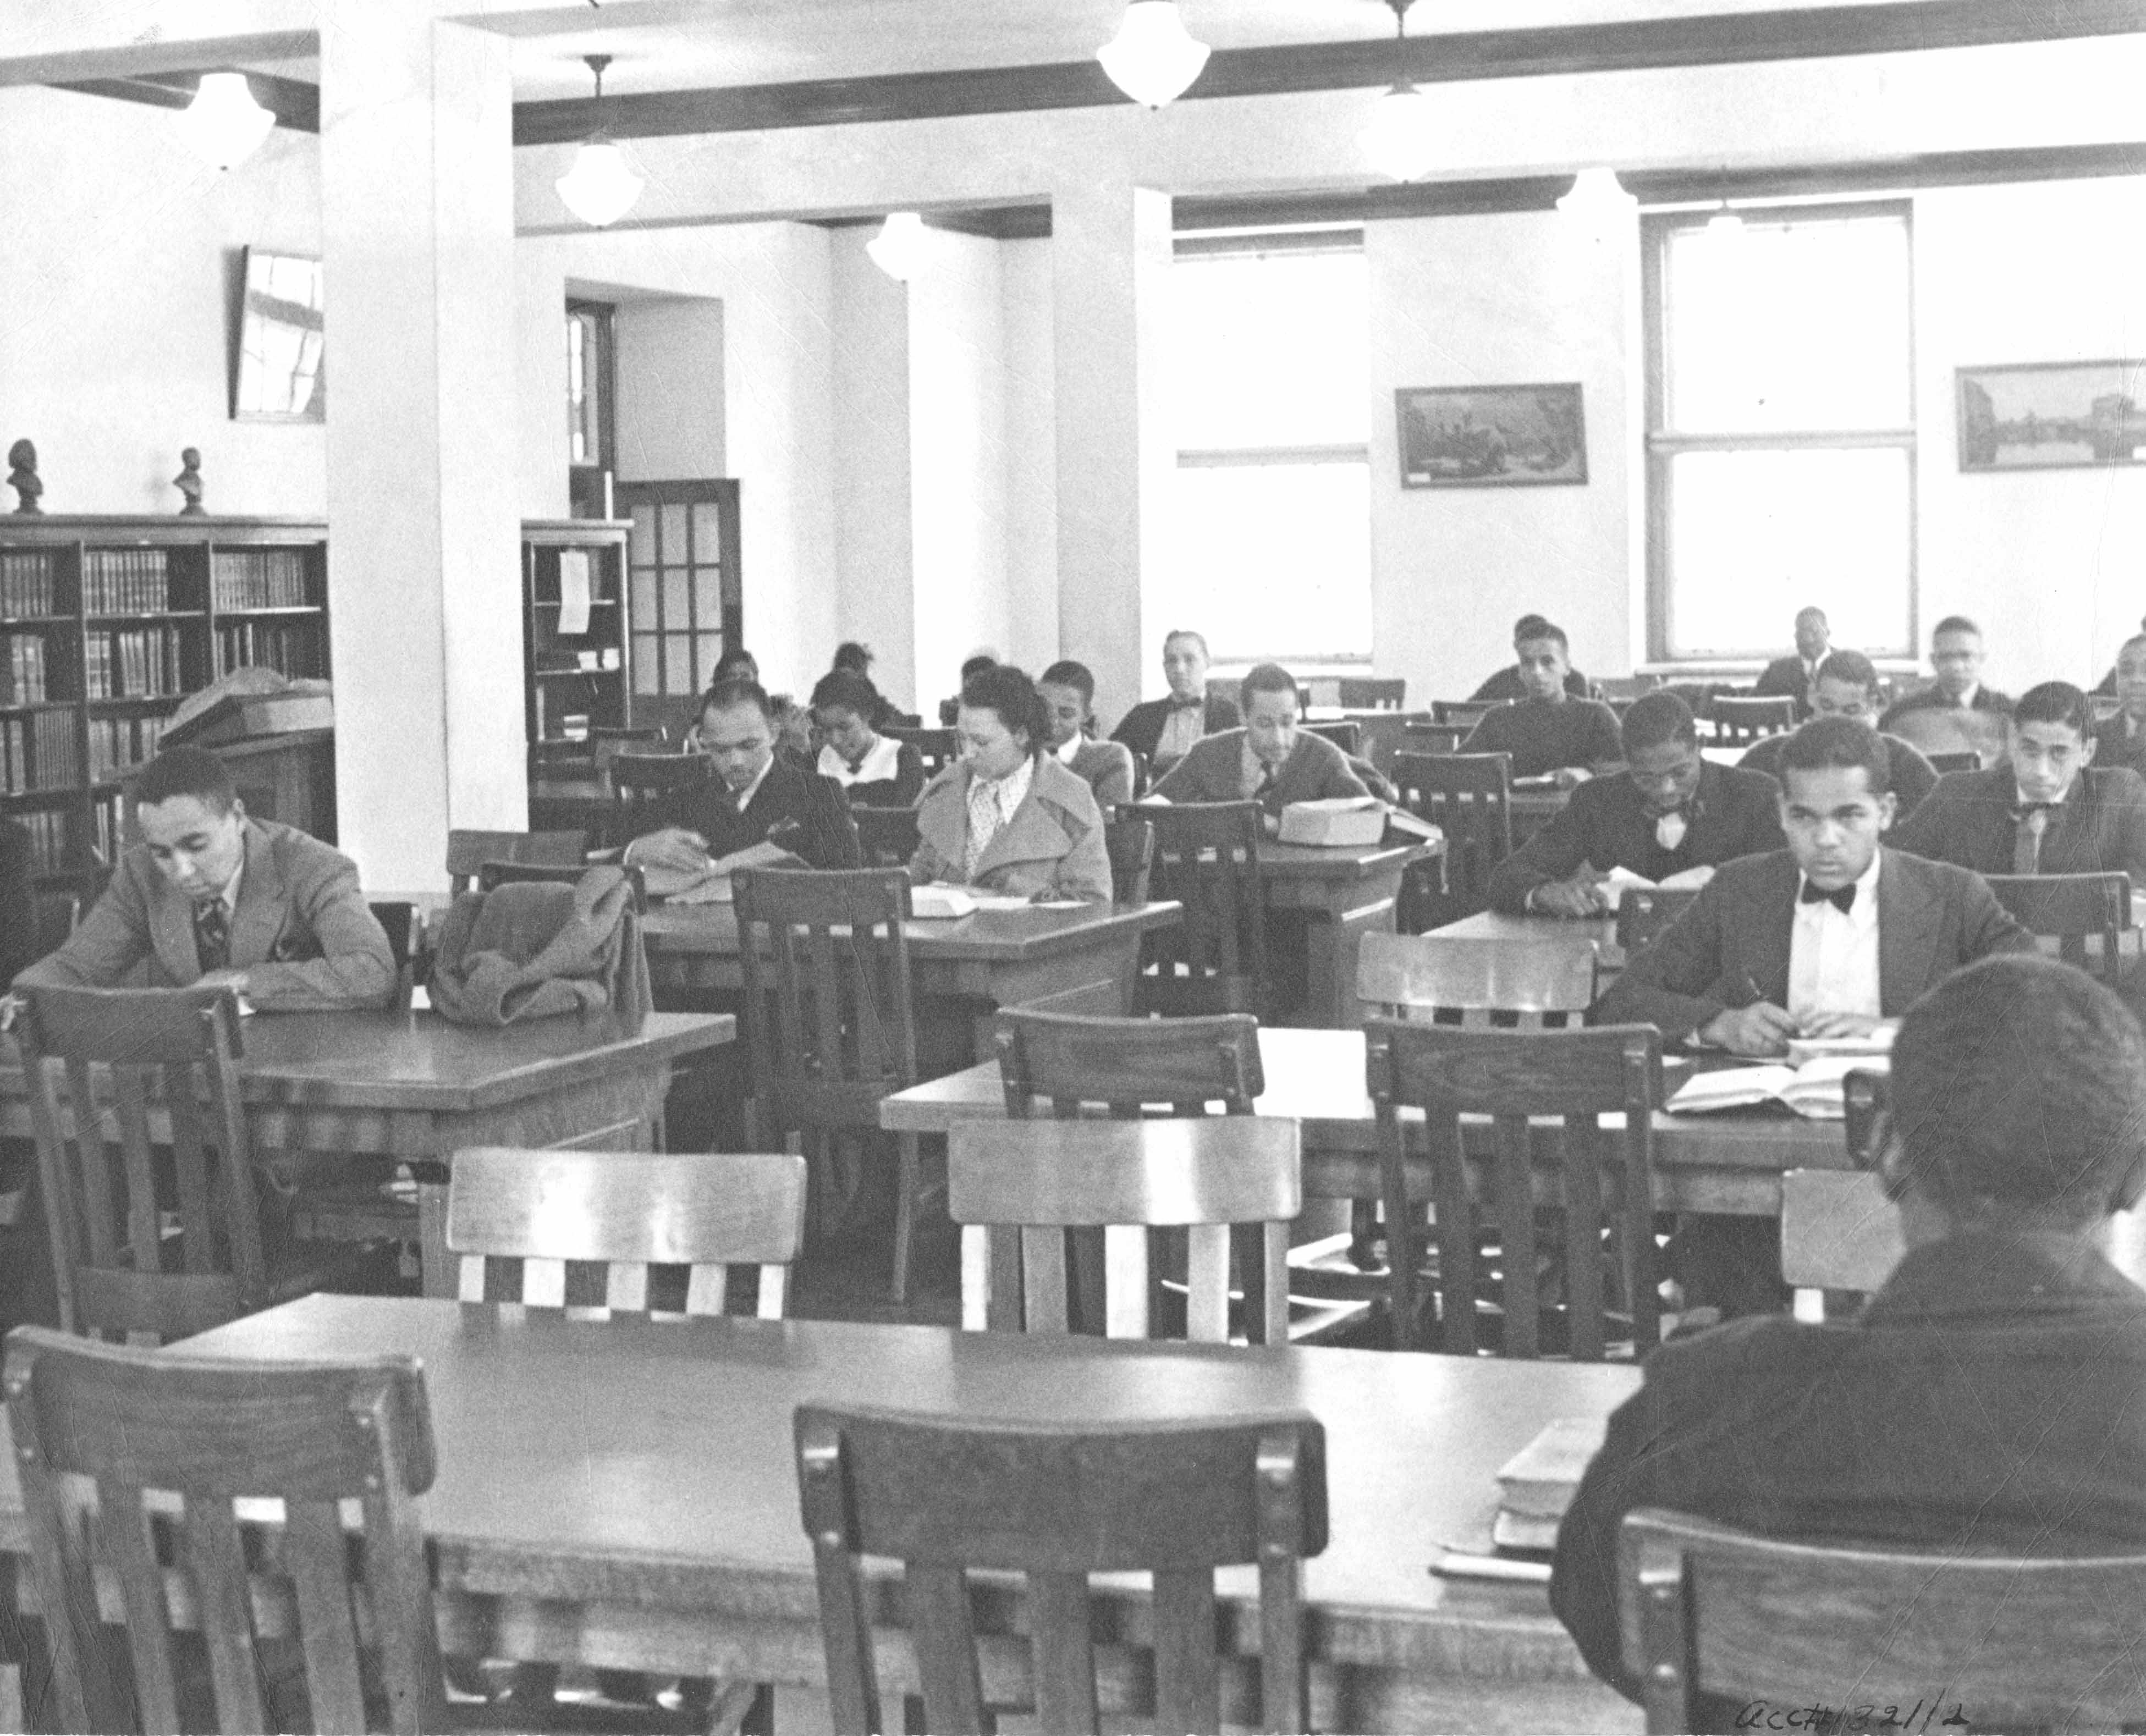 Library at Lincoln University, c. 1937